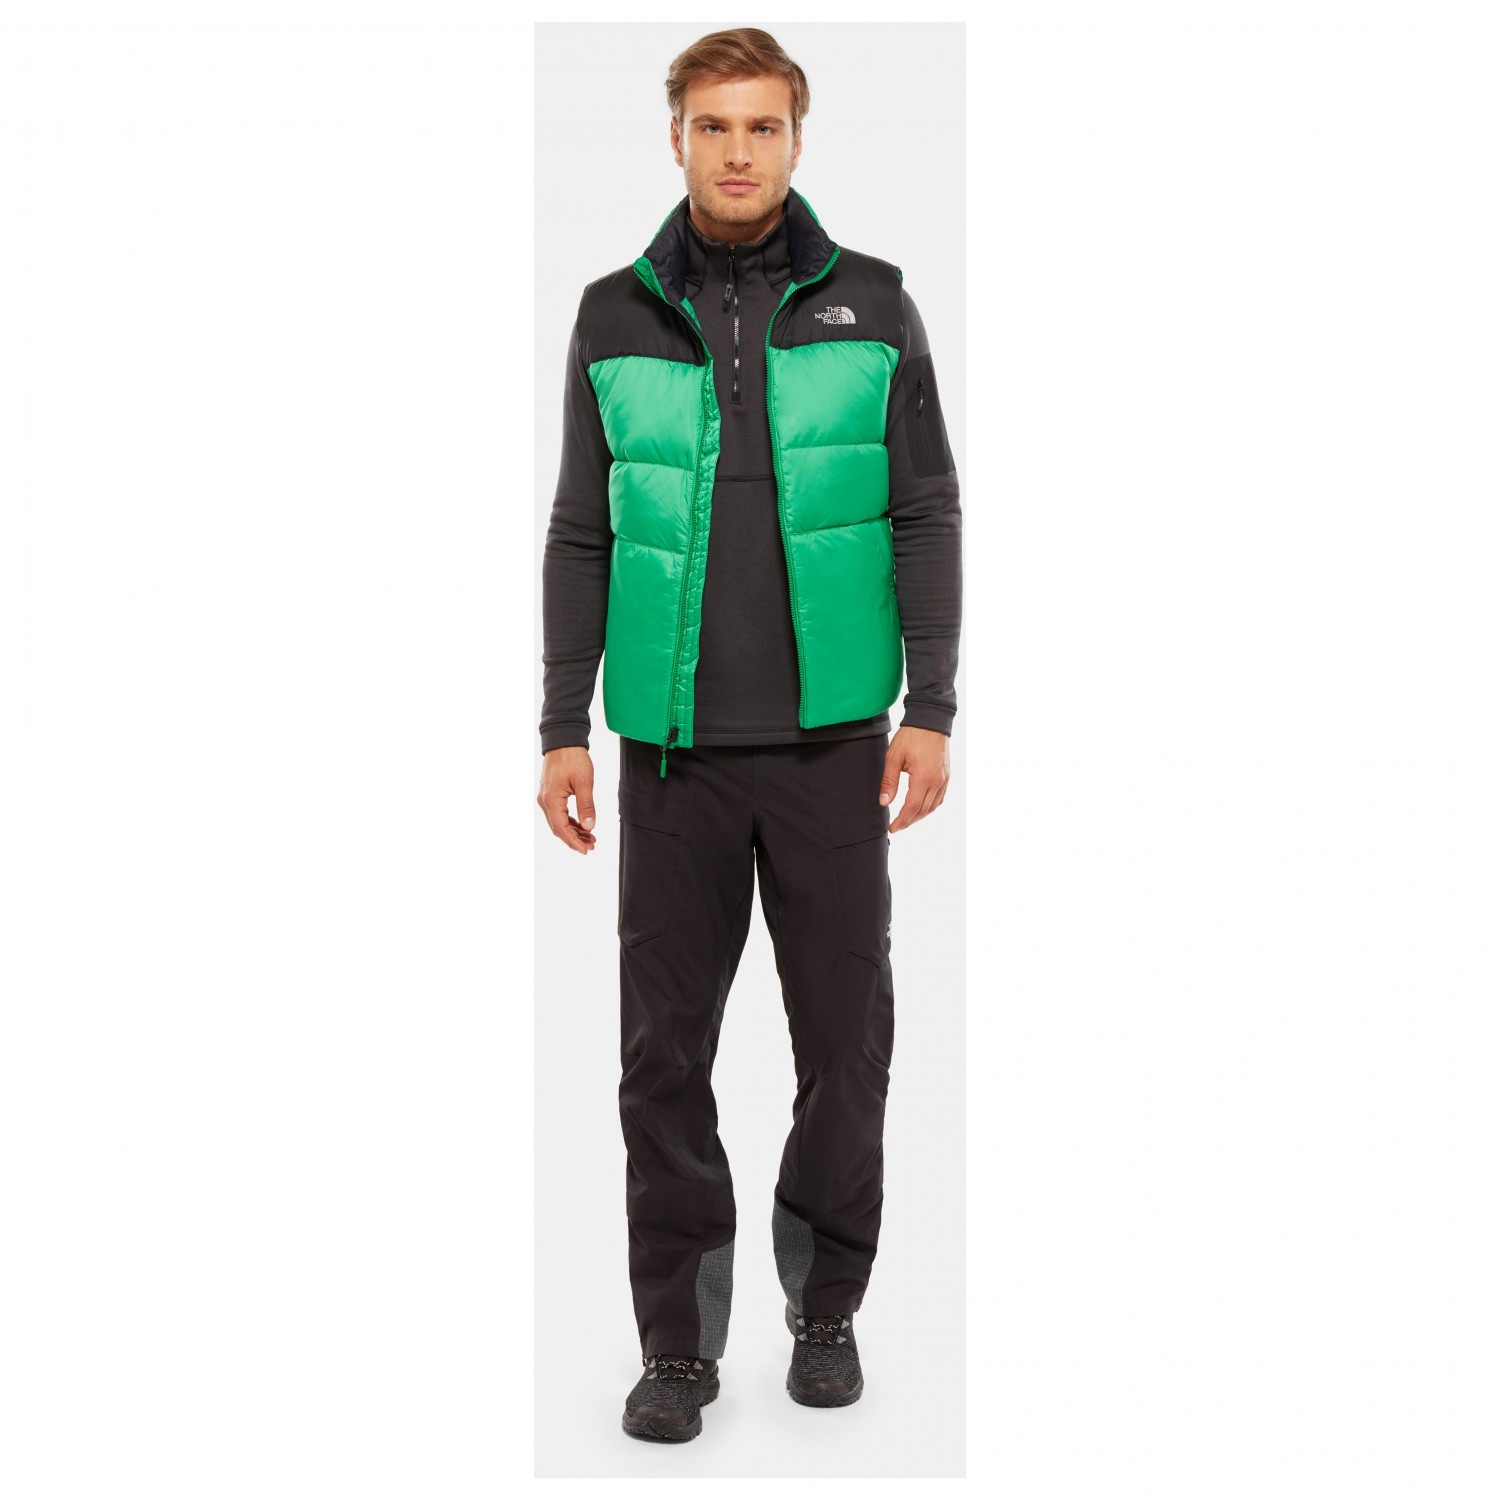 cc837e3e0 The North Face - Nuptse III Vest - Down vest - Primary Green / TNF Black |  XS